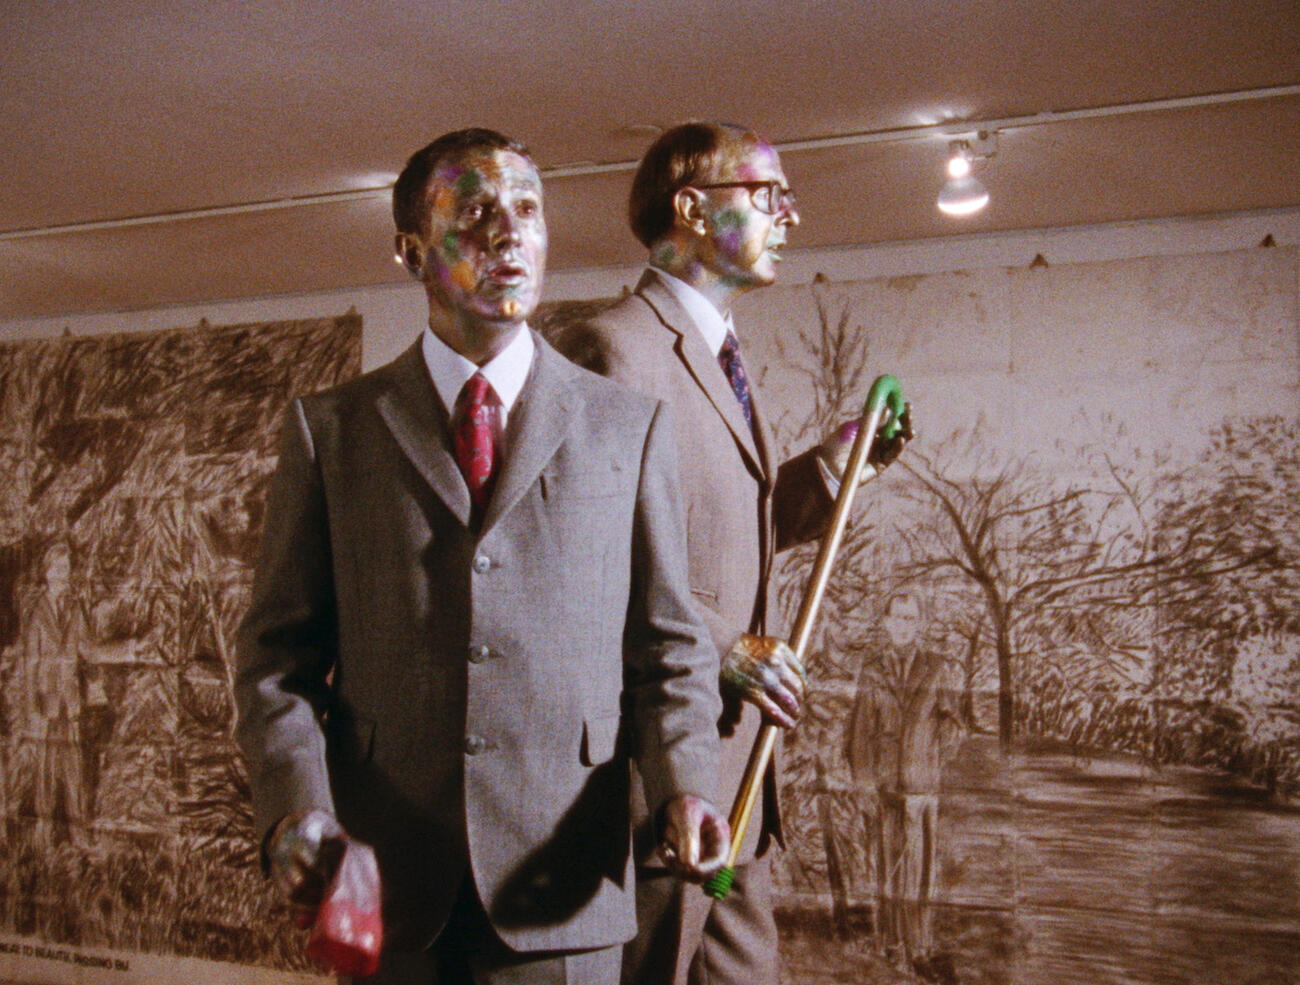 Image of Gilbert & George in suits